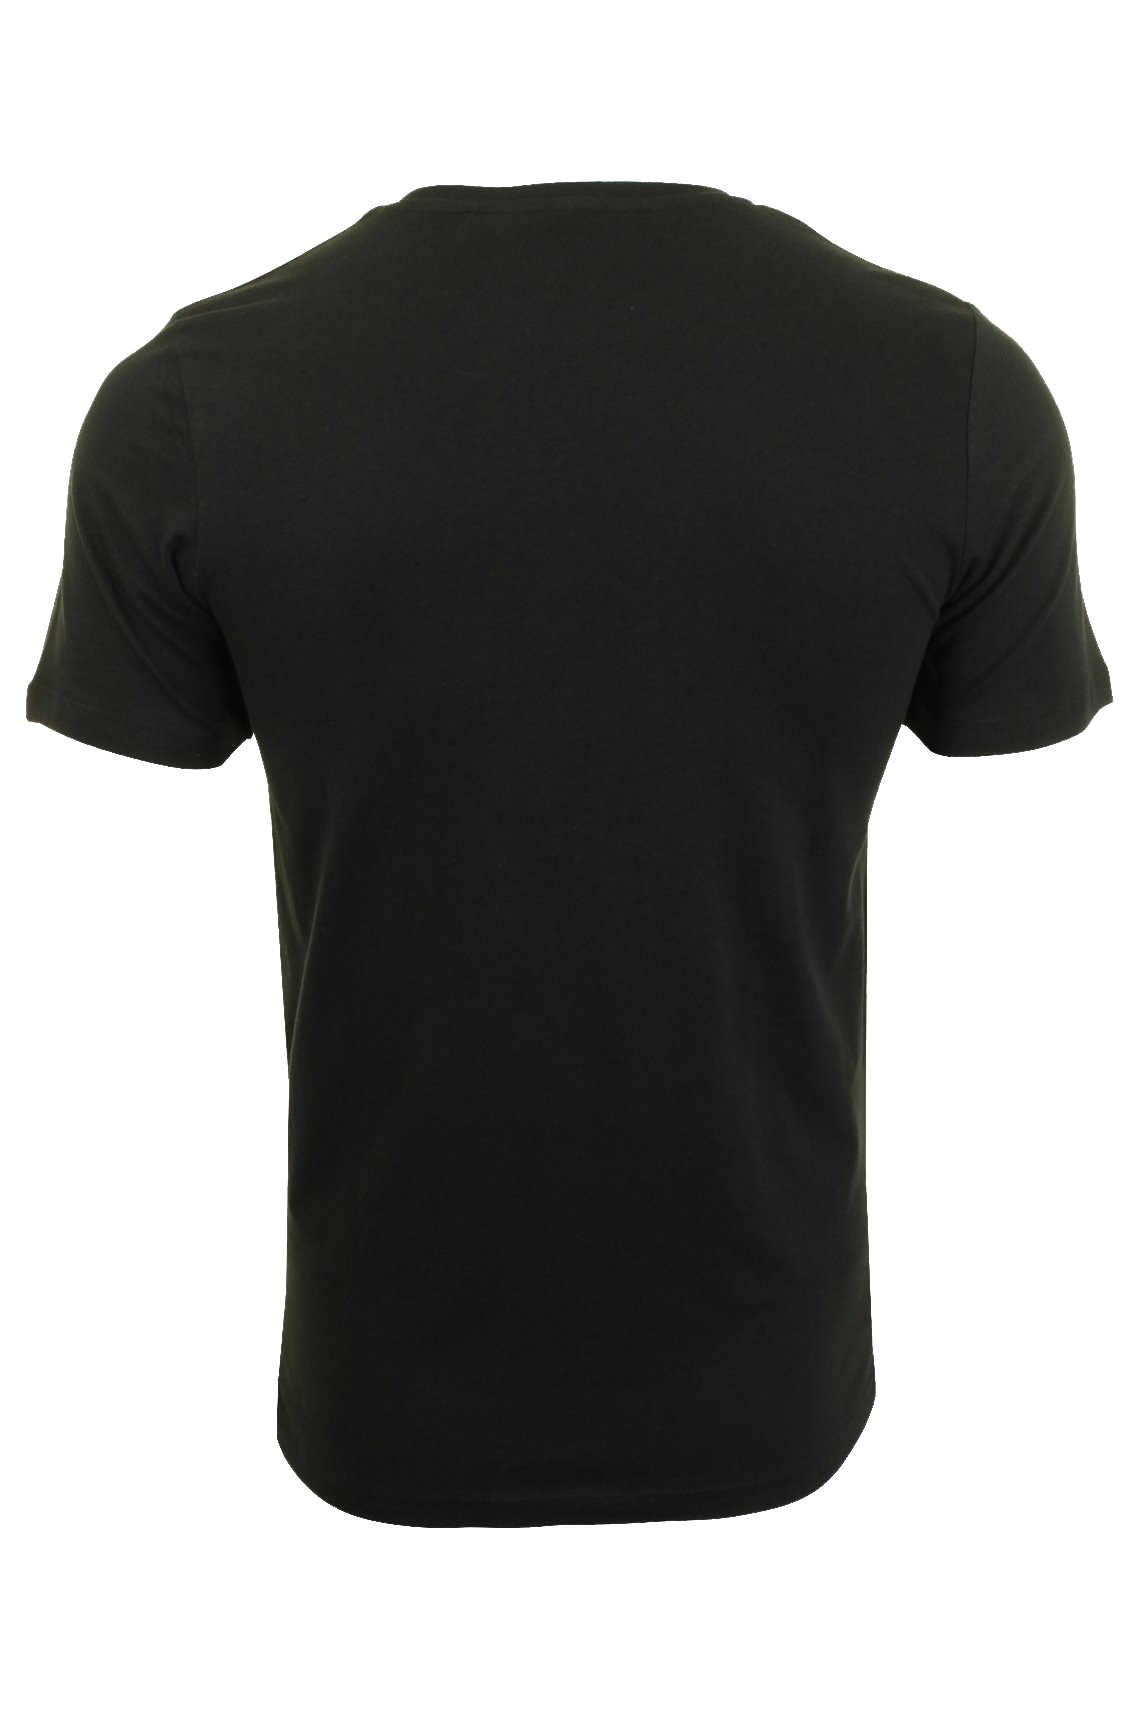 Jack-amp-Jones-Mens-Short-Sleeved-T-Shirt-039-JJEJEANS-039 thumbnail 4